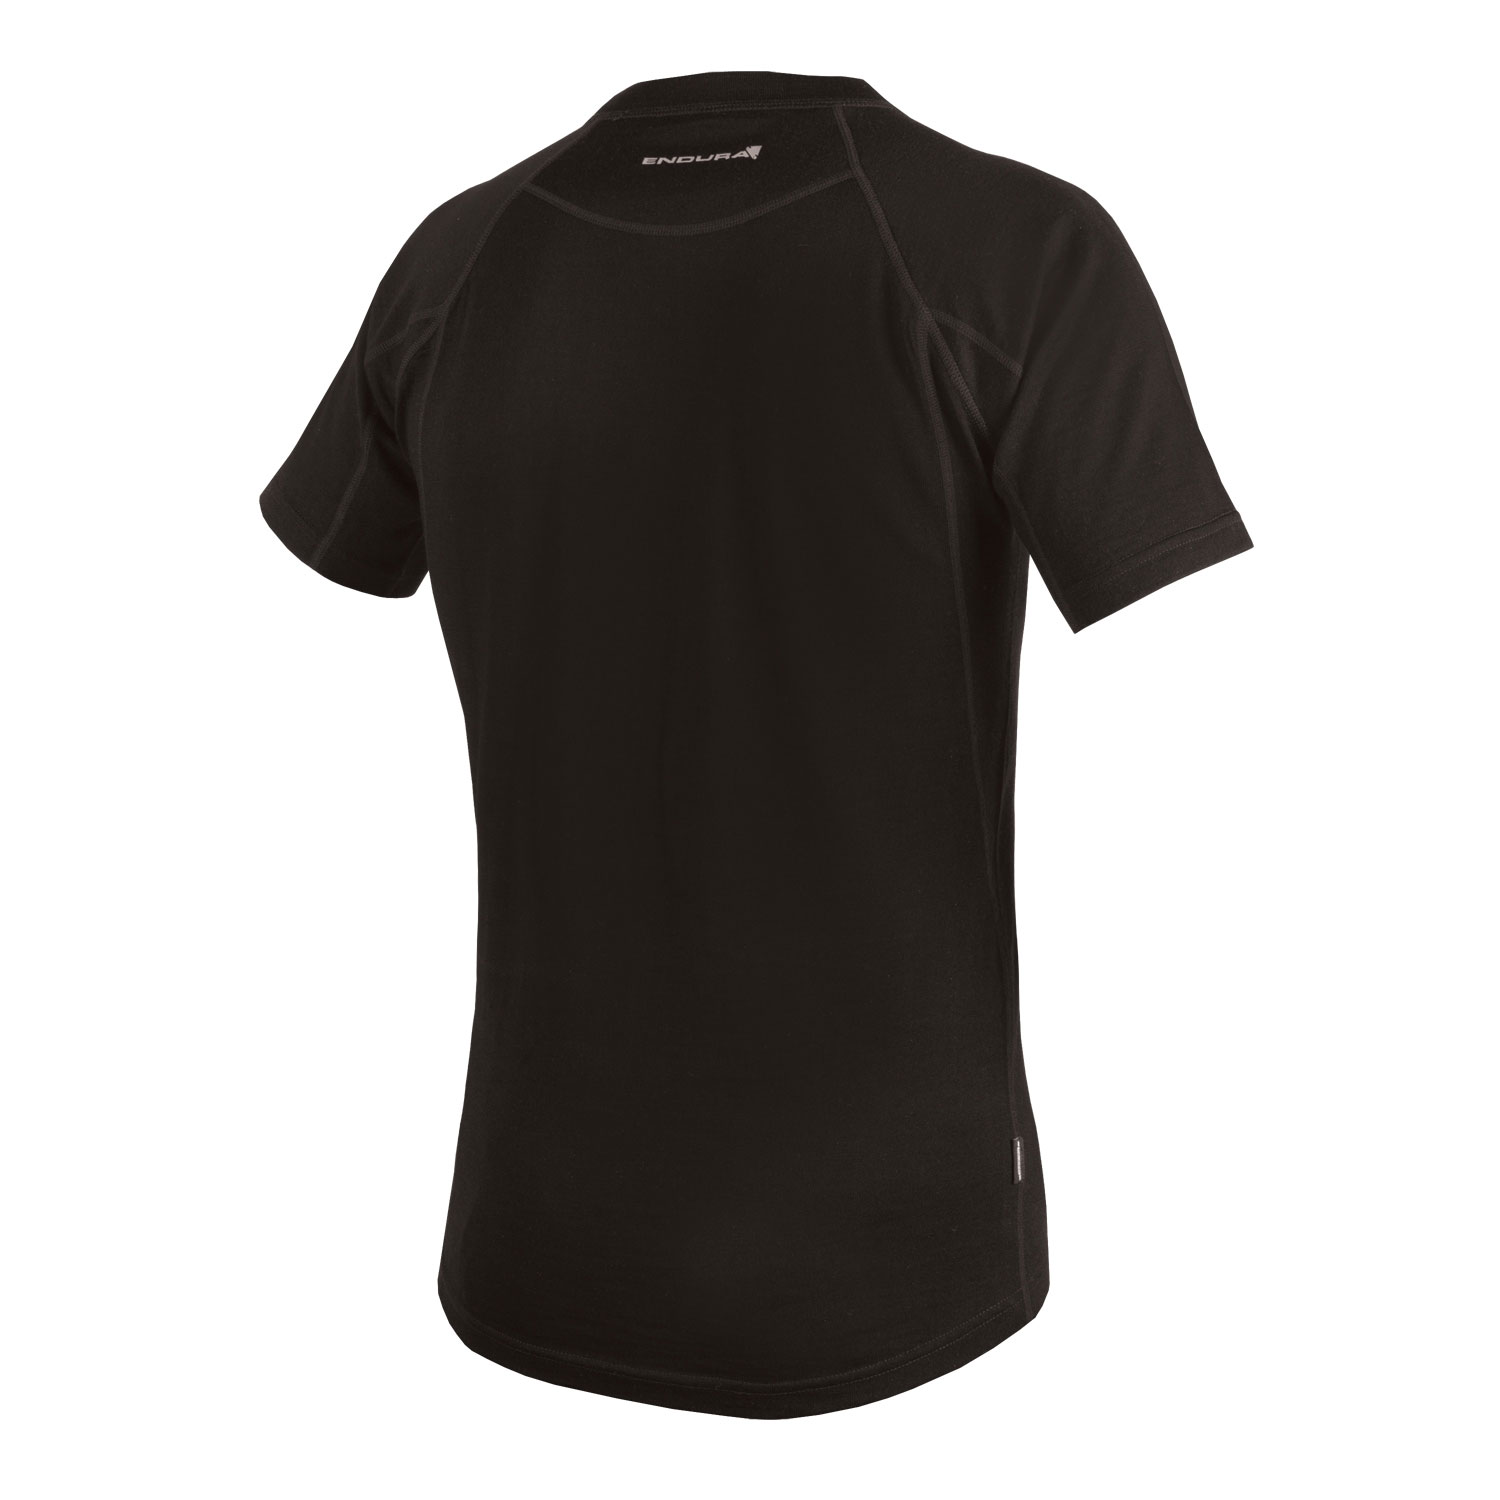 BaaBaa Merino S/S Baselayer Black/None